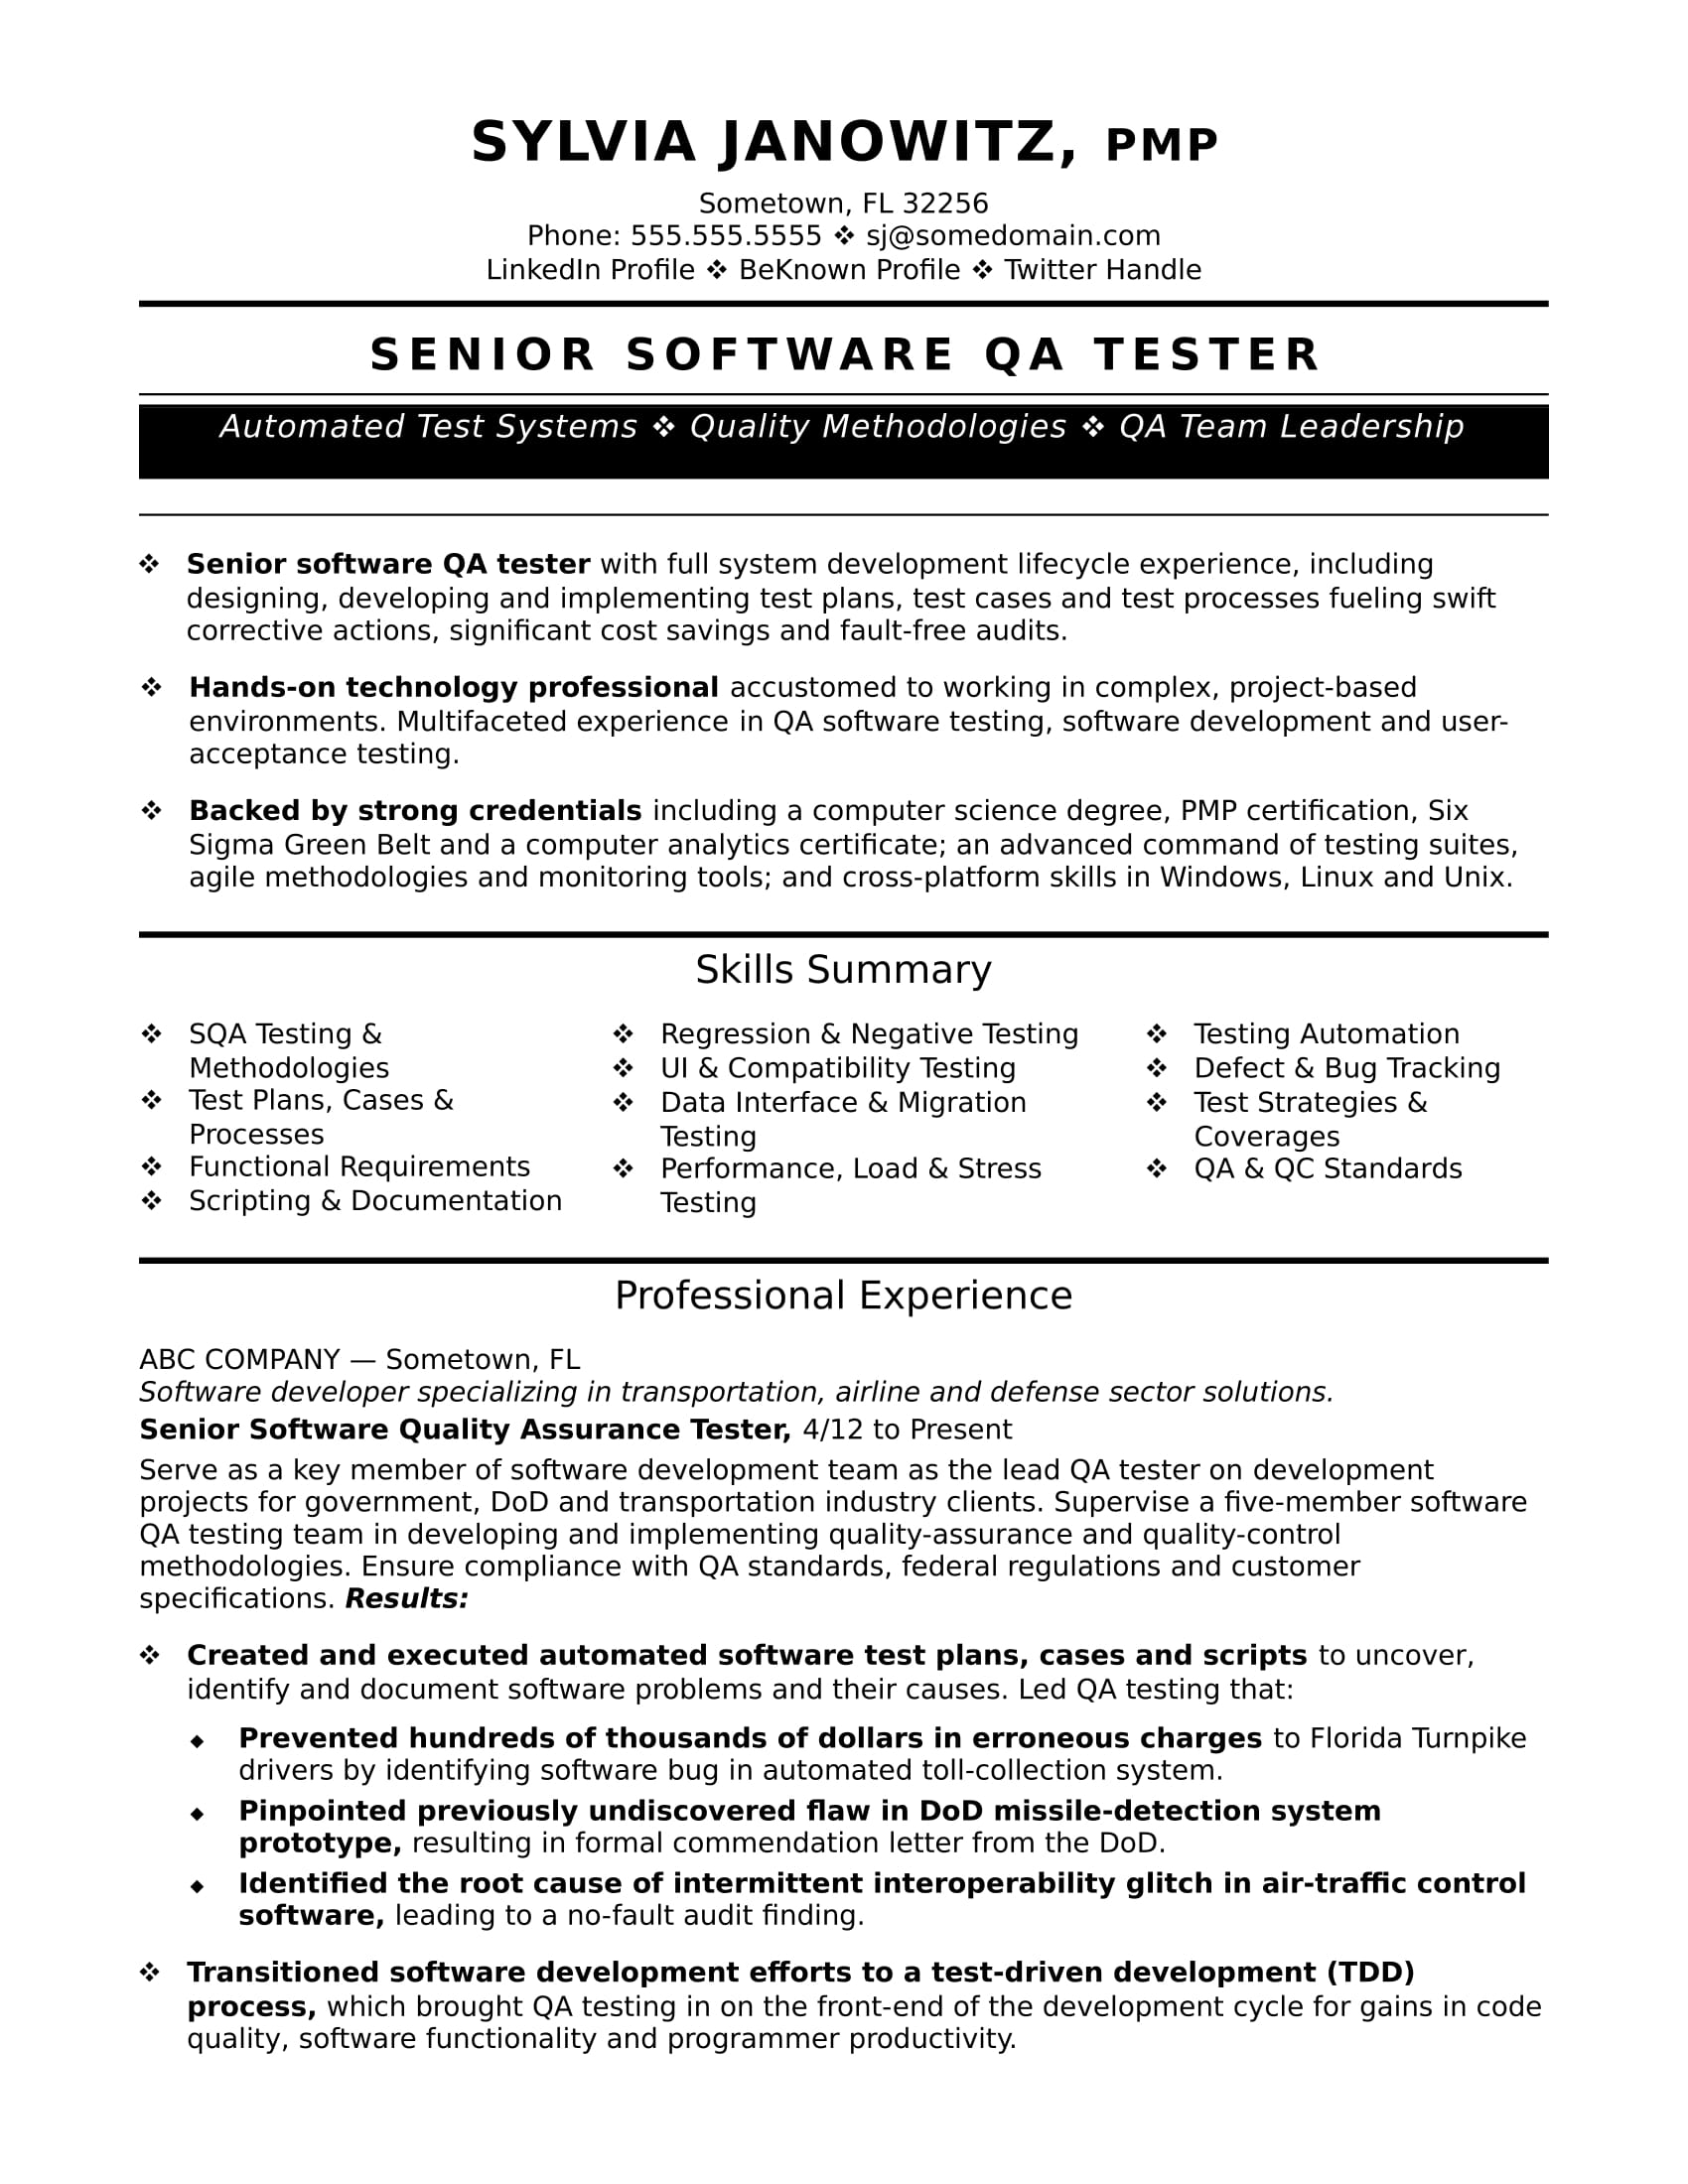 sample resume for software tester 2 years experience - experienced qa software tester resume sample